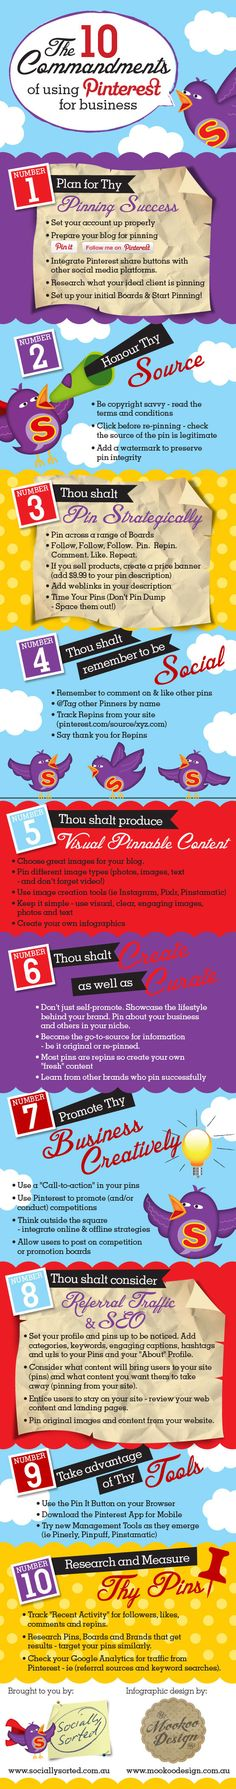 The 10 commandments of using #Pinterest for Business